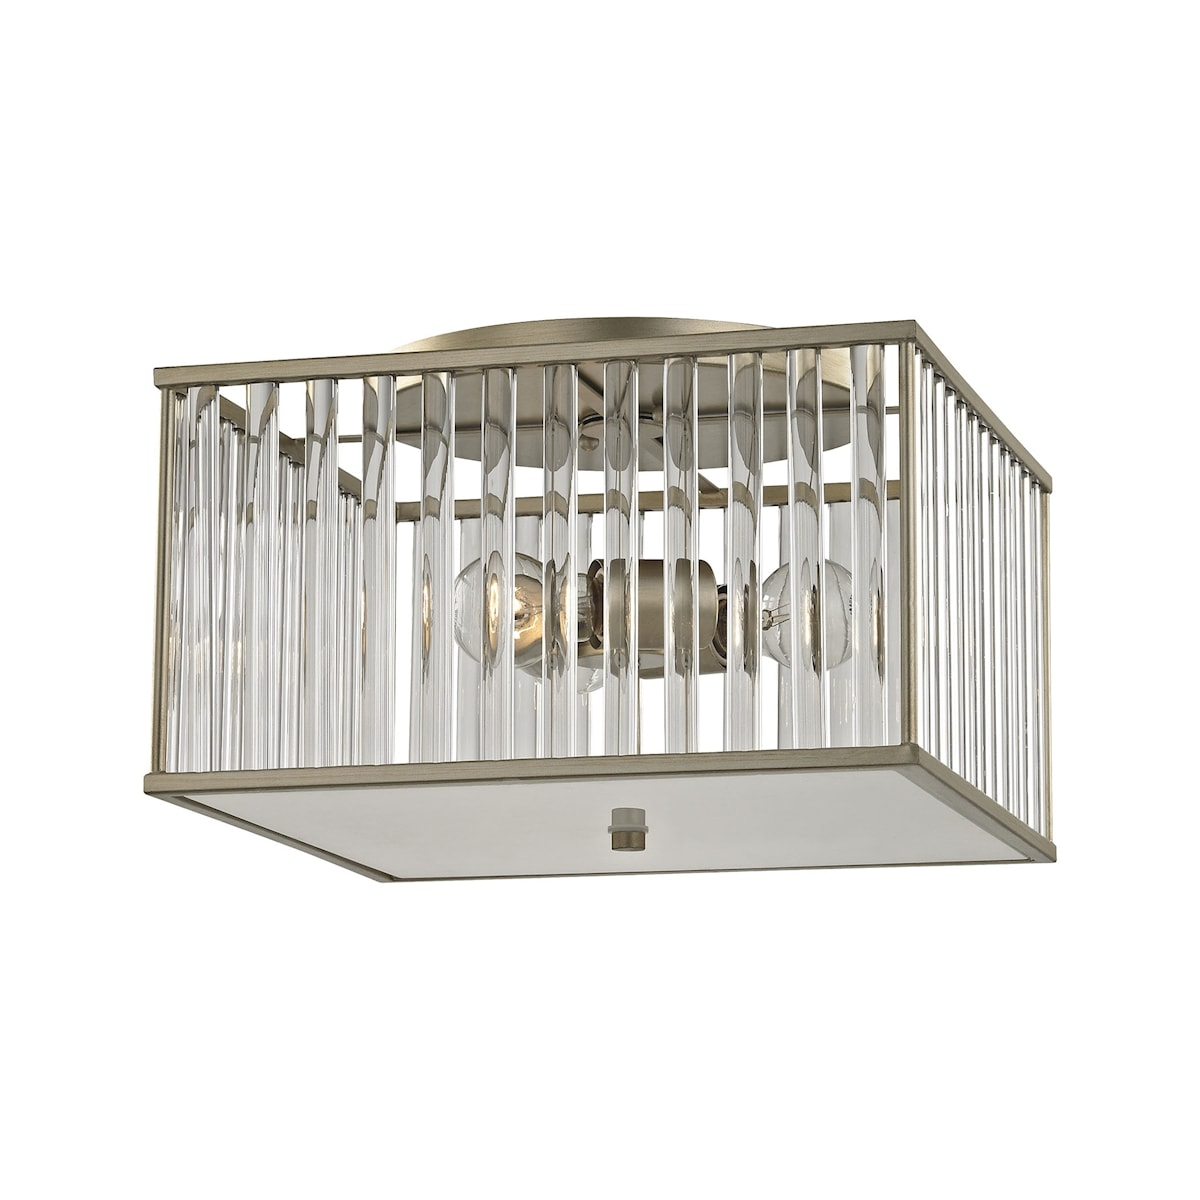 EL-81094/3_Ridley 3 Light Semi Flush in Aged Silver with Oval Glass Rods